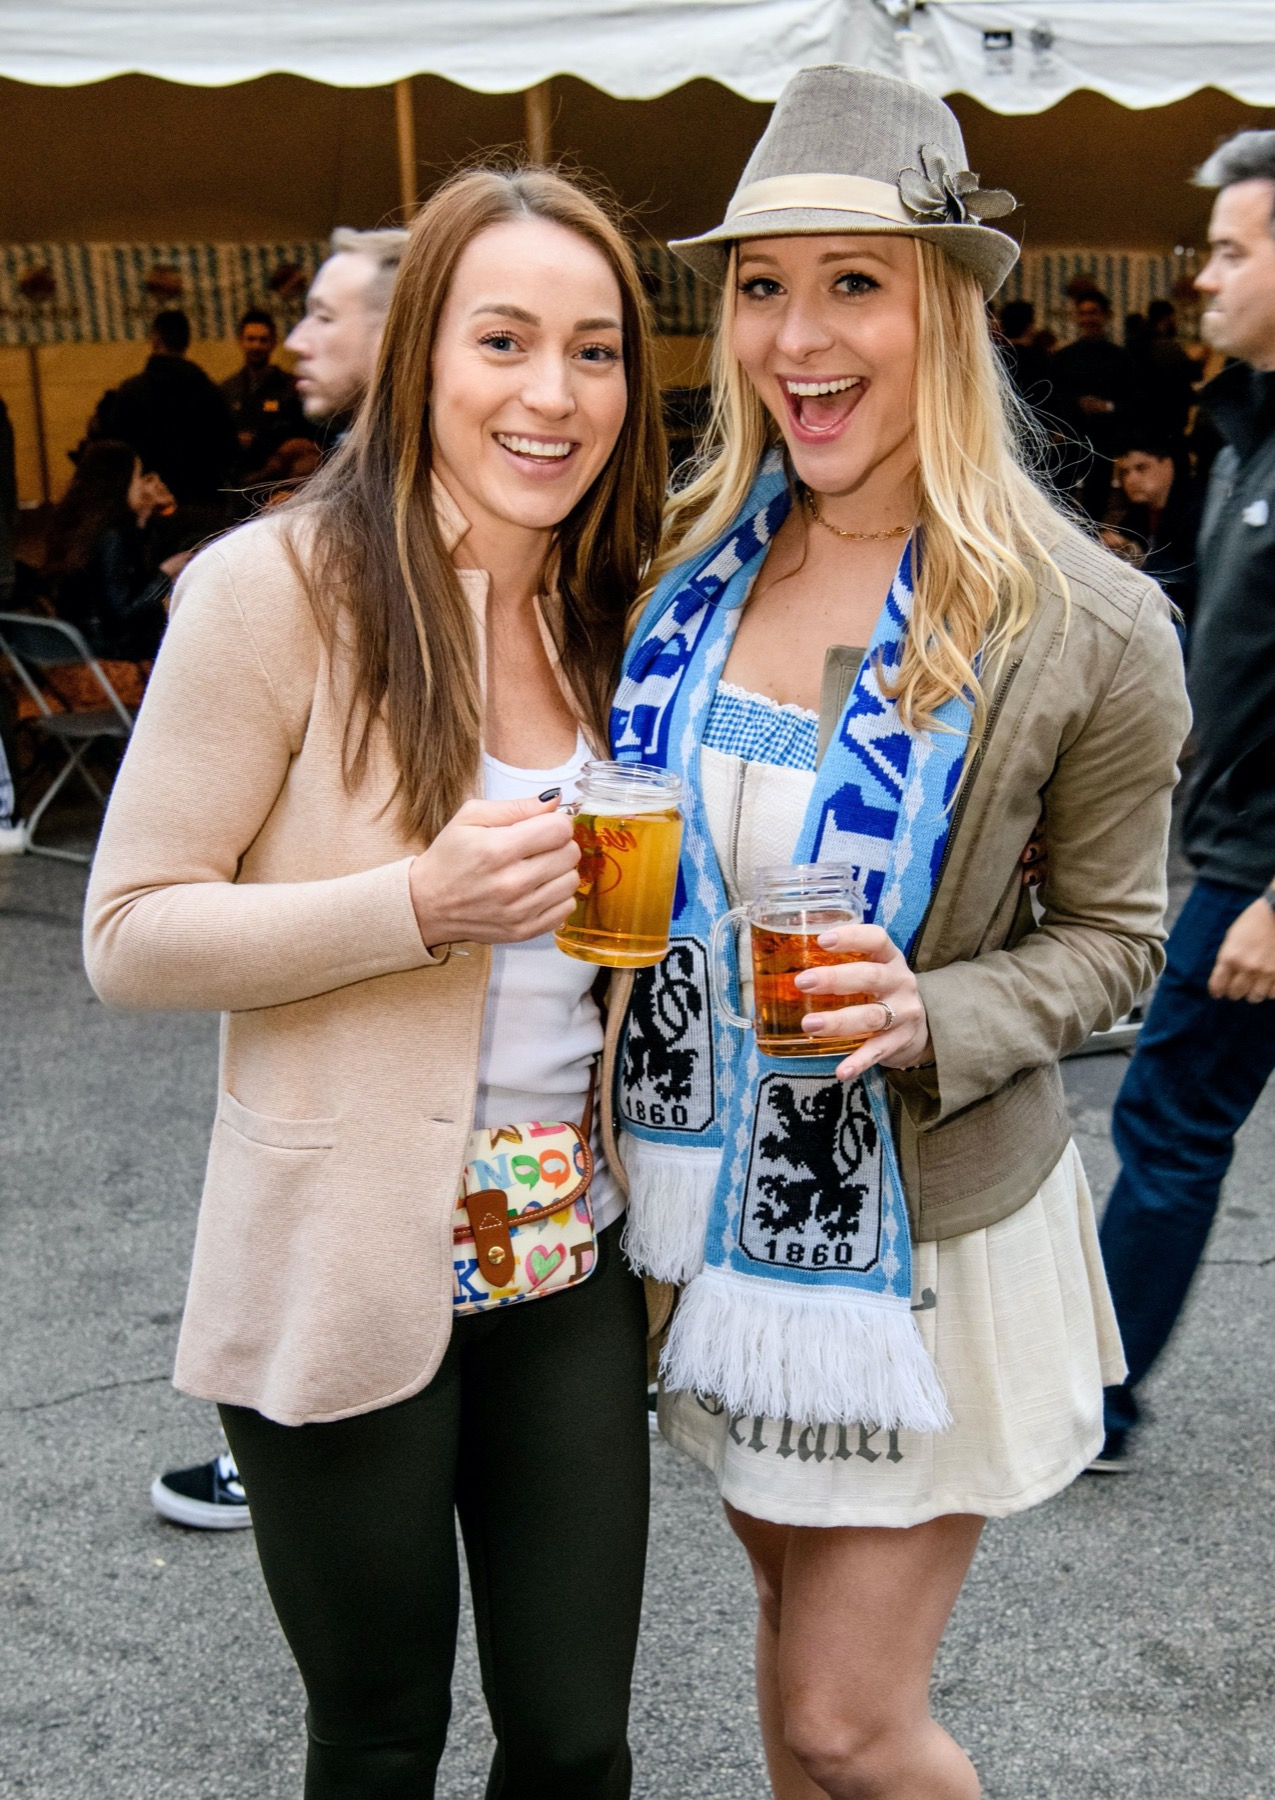 Two women dressed up for Oktoberfest Chicago with beers